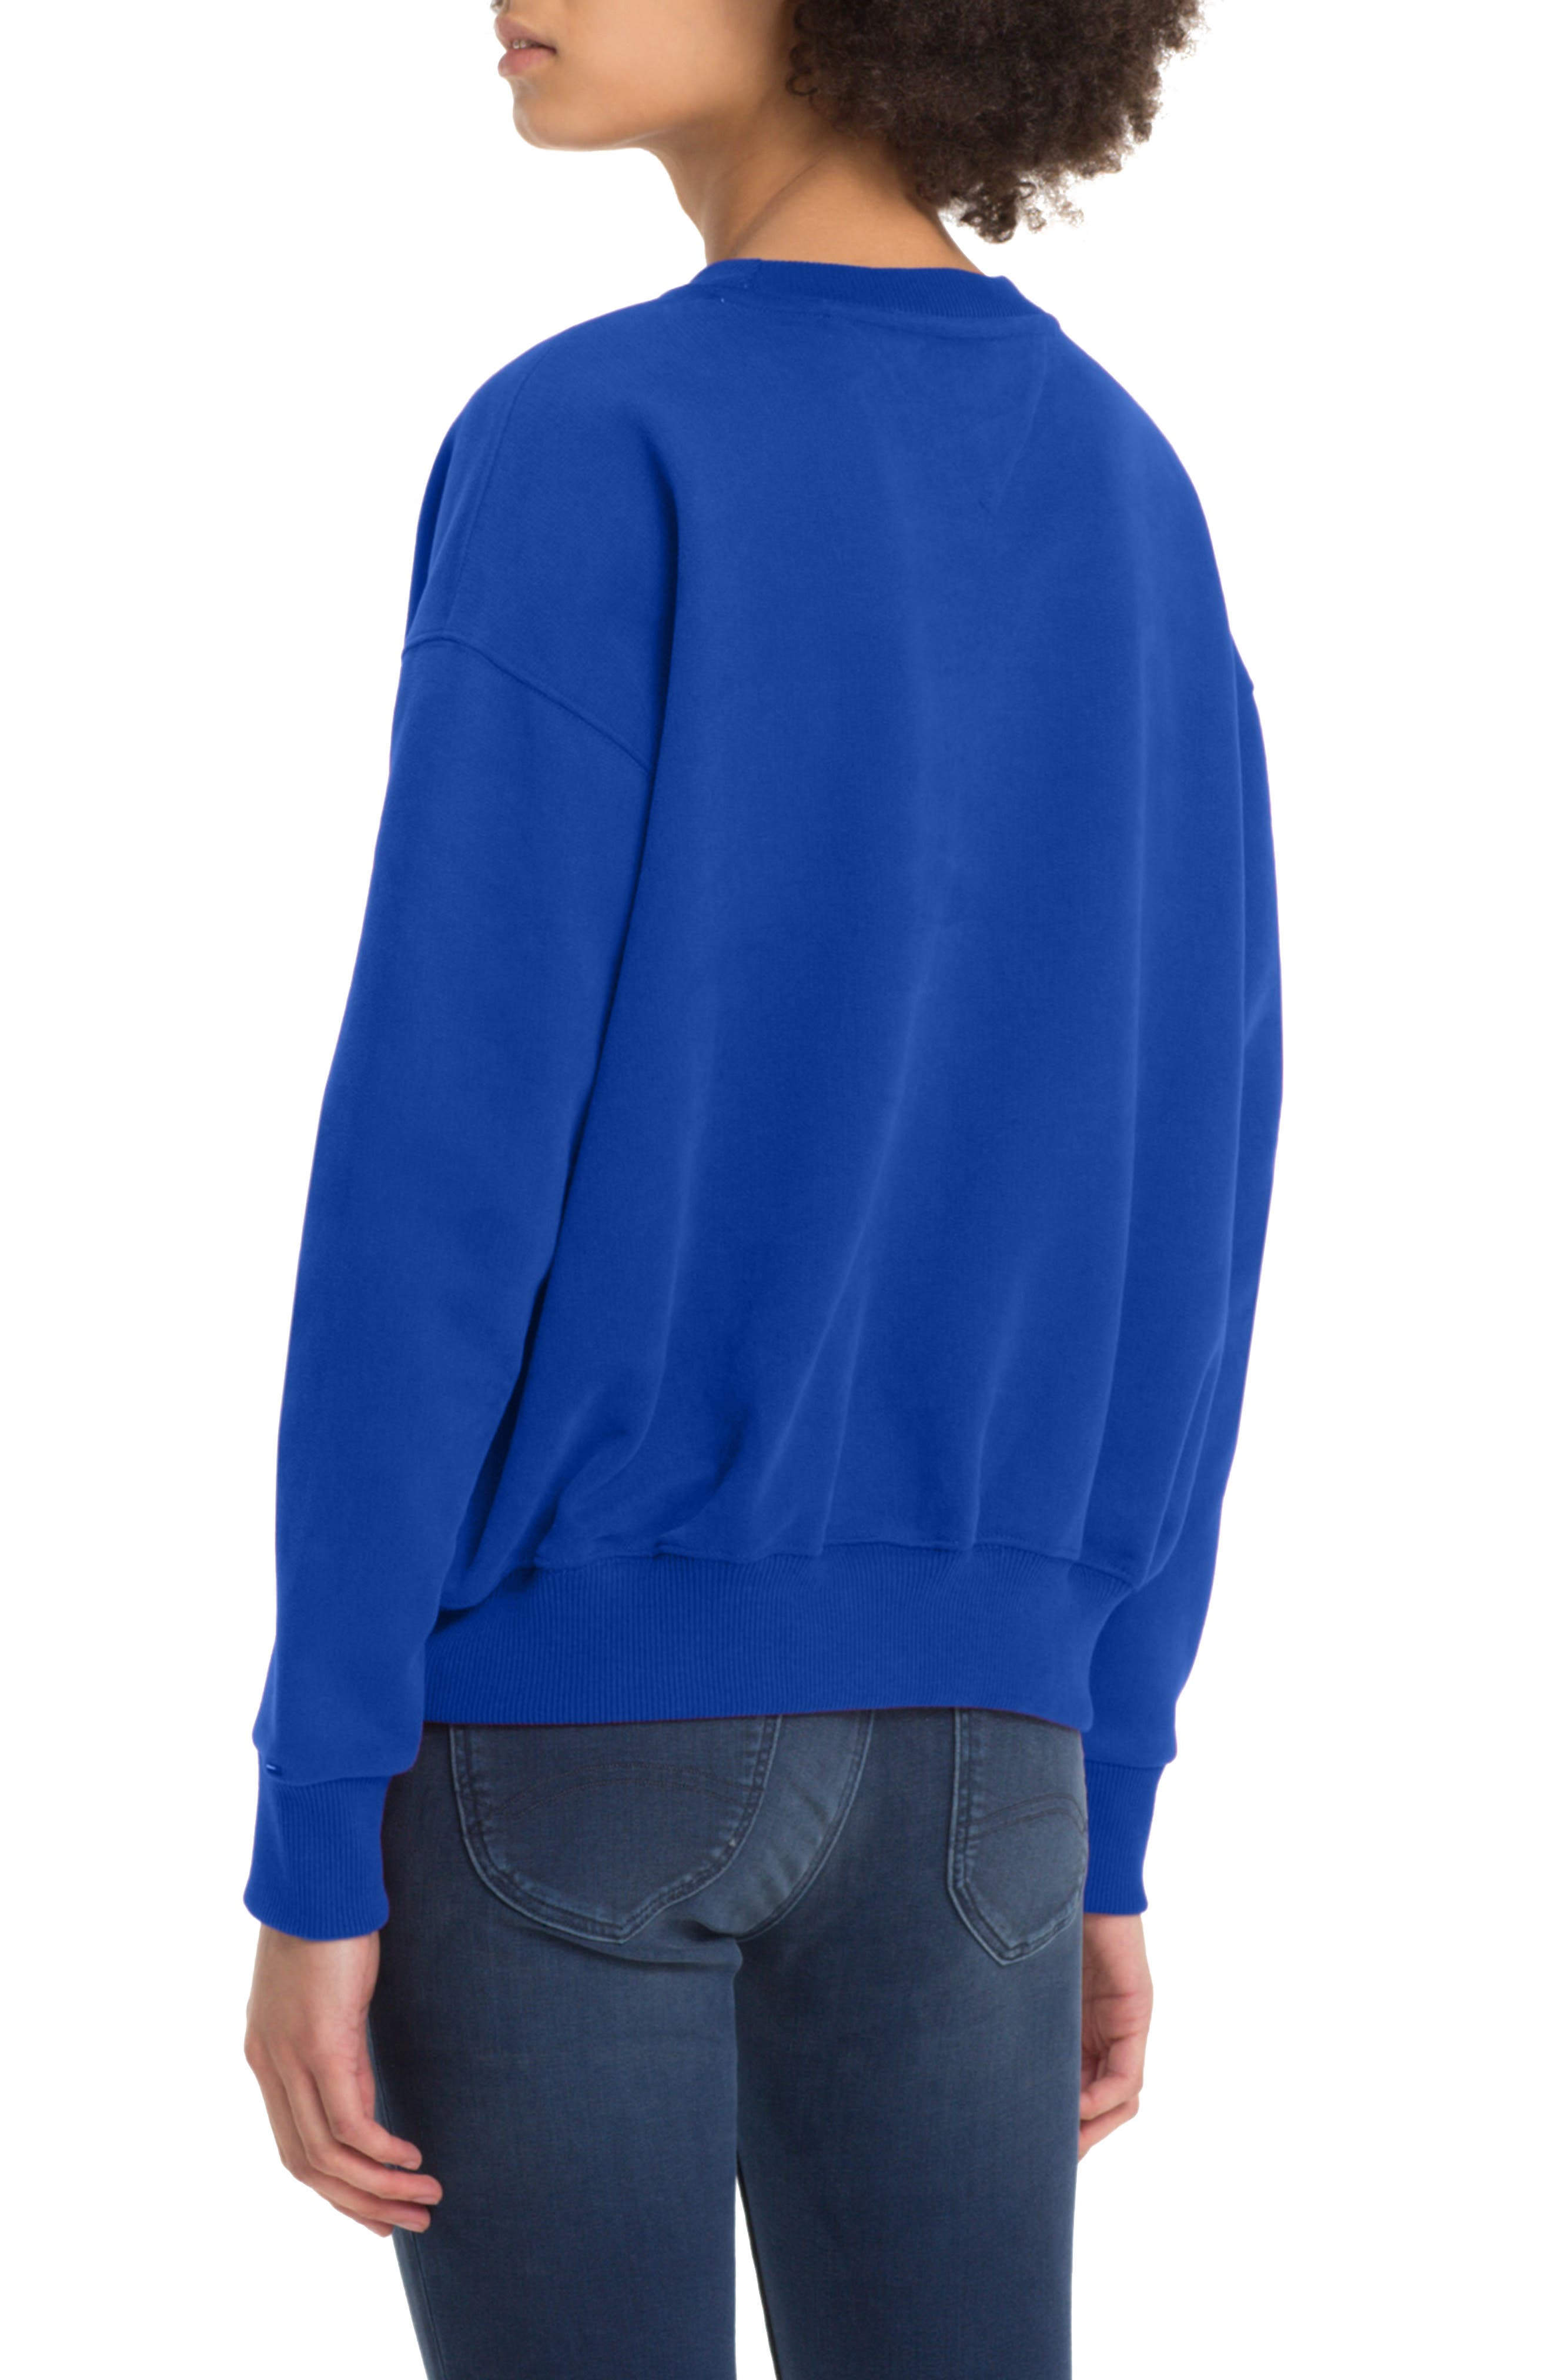 TOMMY JEANS,                             TJW Embroidered Logo Sweatshirt,                             Alternate thumbnail 2, color,                             419